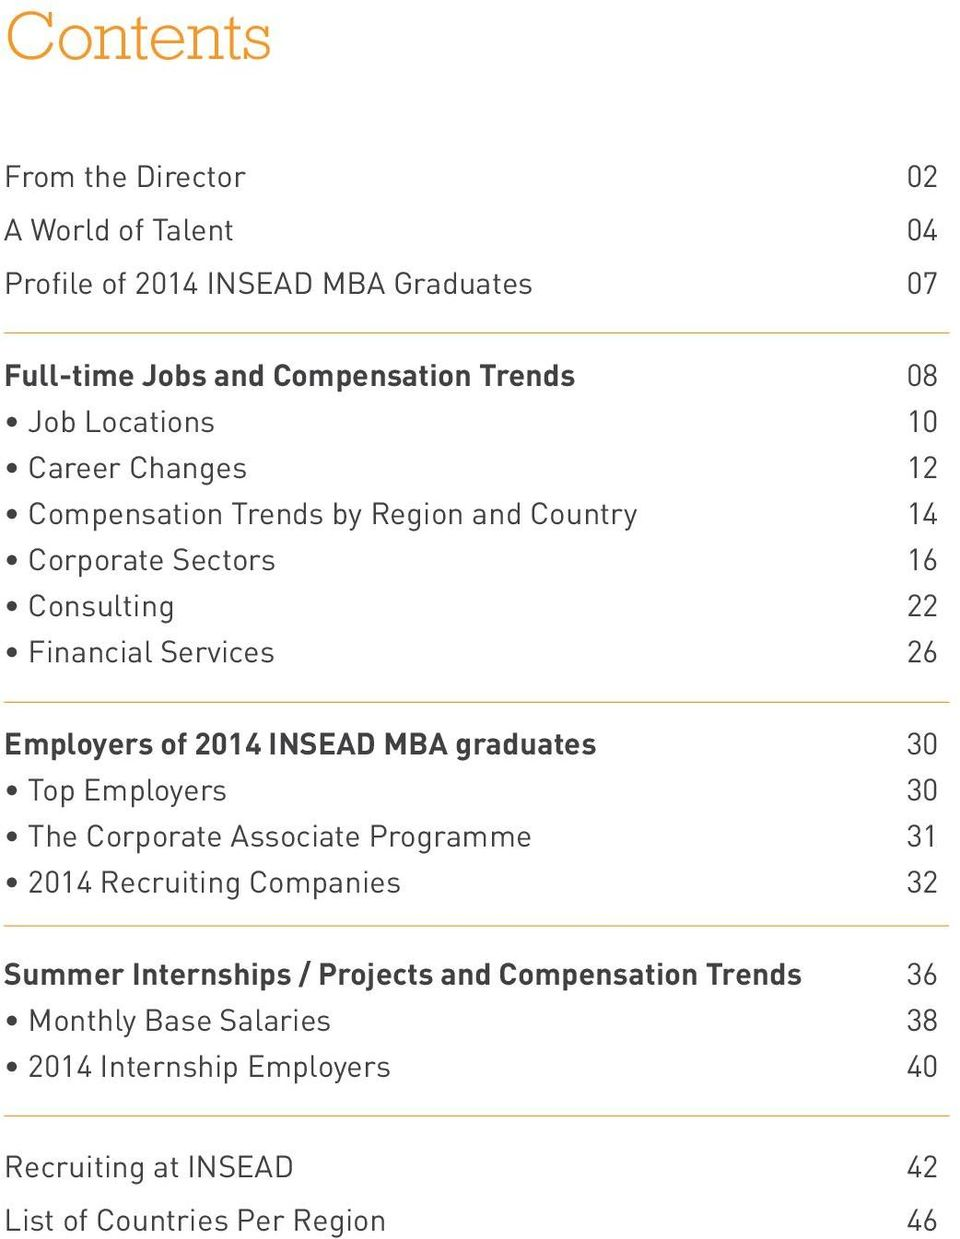 Employers of 2014 INSEAD MBA graduates 30 Top Employers 30 The Corporate Associate Programme 31 2014 Recruiting Companies 32 Summer